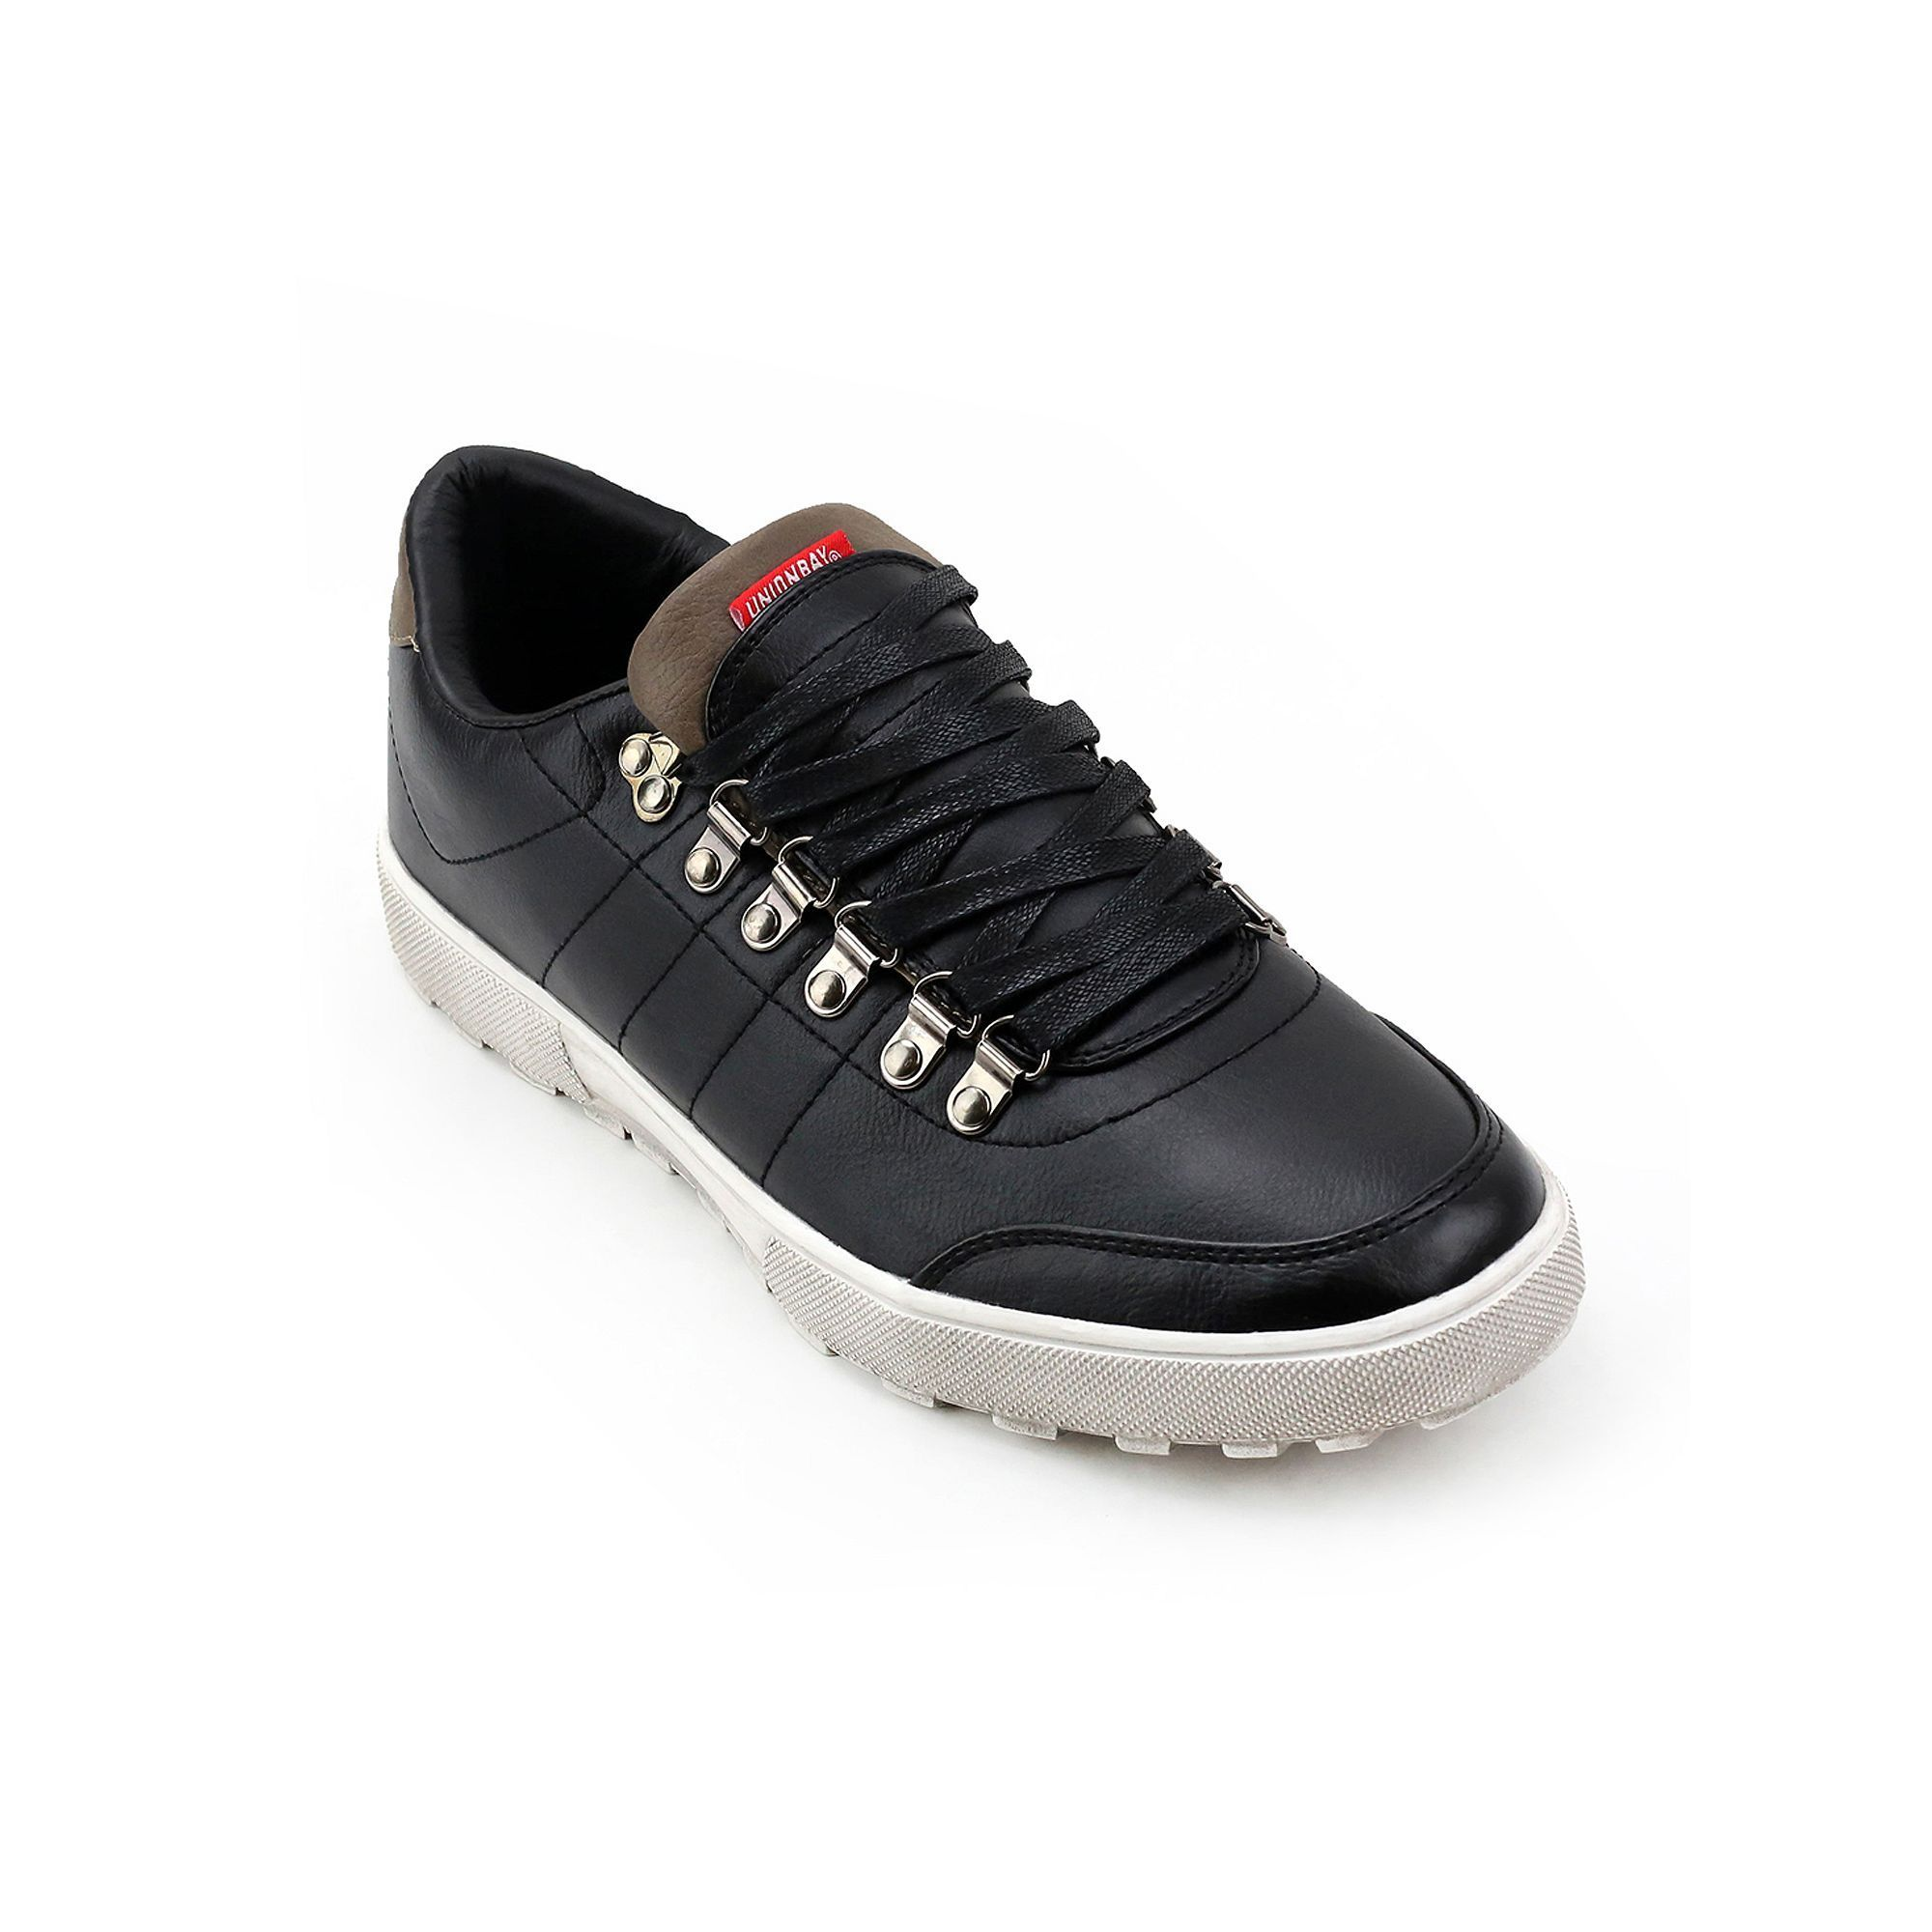 reputable site 01904 e0b16 UNIONBAY Duvall Men s Sneakers   Products and Black